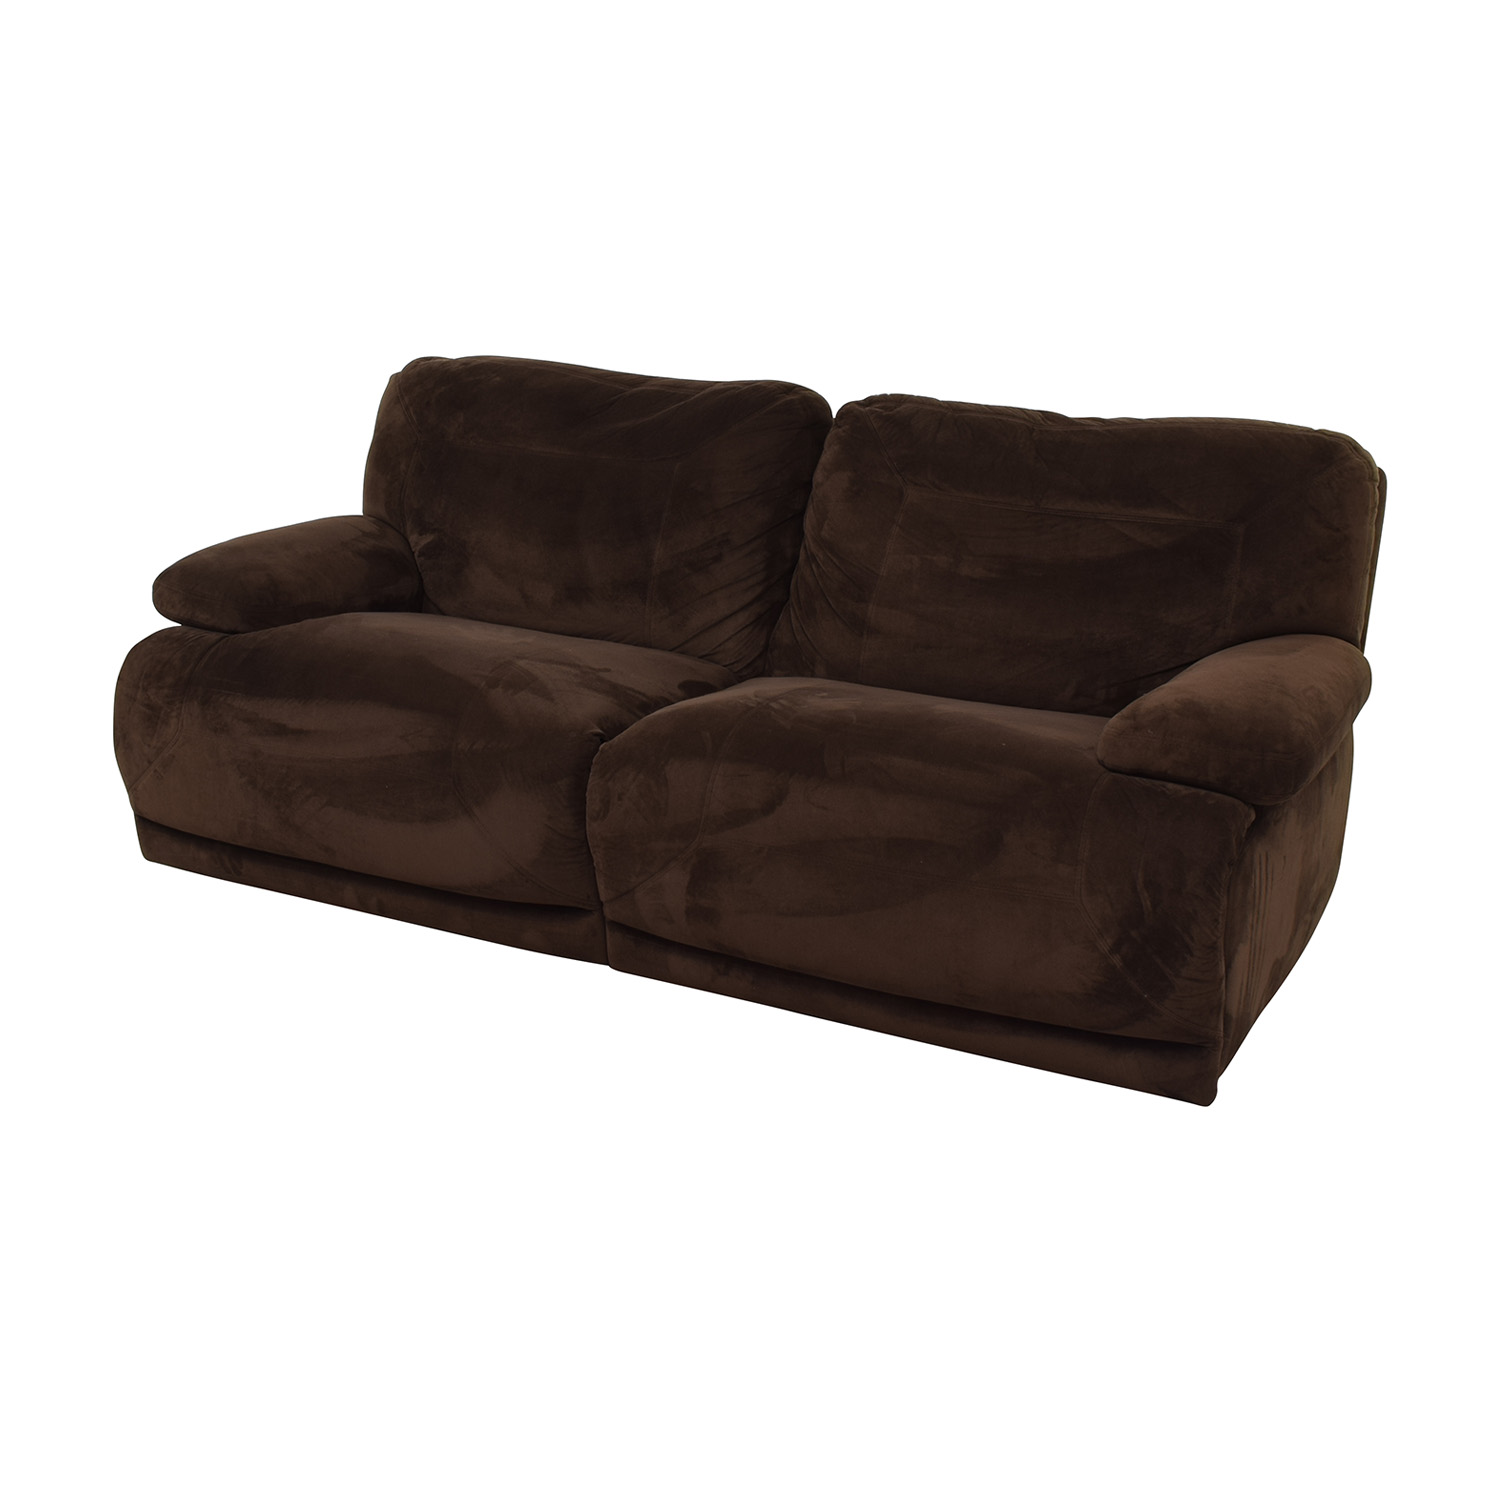 Macy's Macy's Brown Recliner Couch Brown